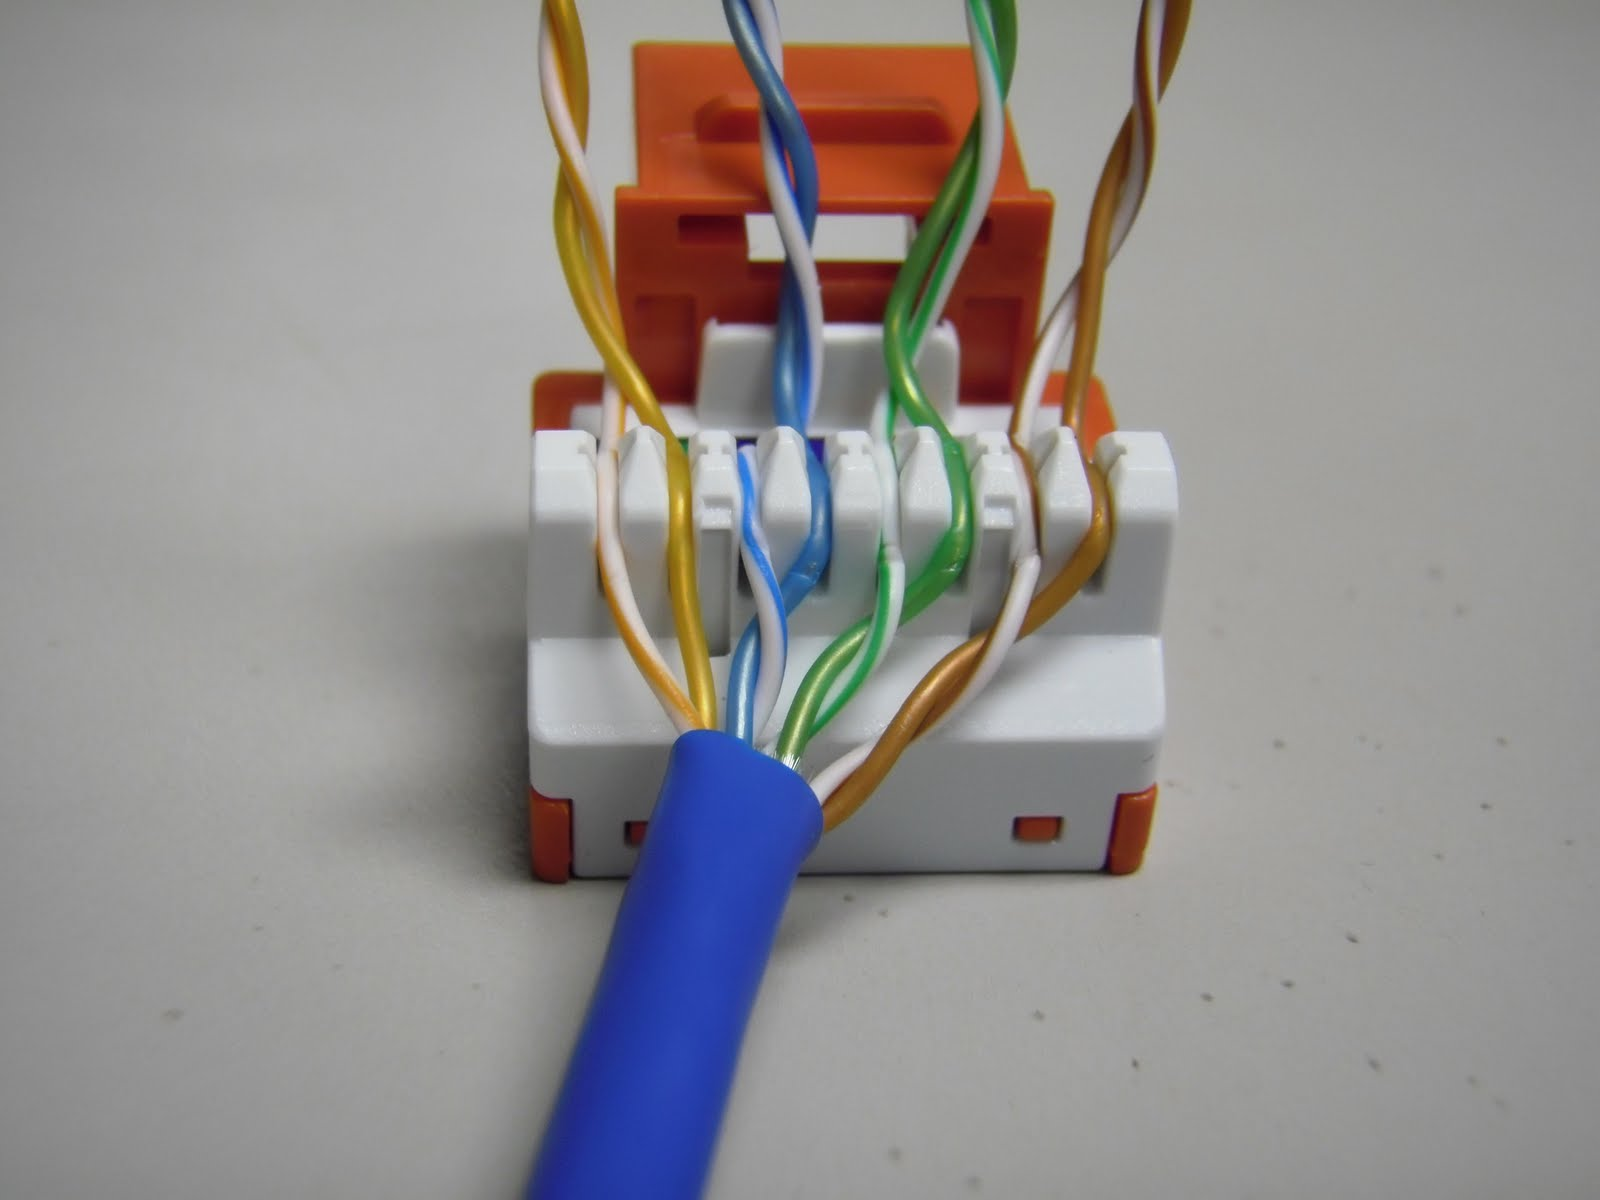 Cat5e Keystone Jack Wiring Diagram 34 Images Cat 5e Wire The Trench How To Punch Down Cat6 Jacks